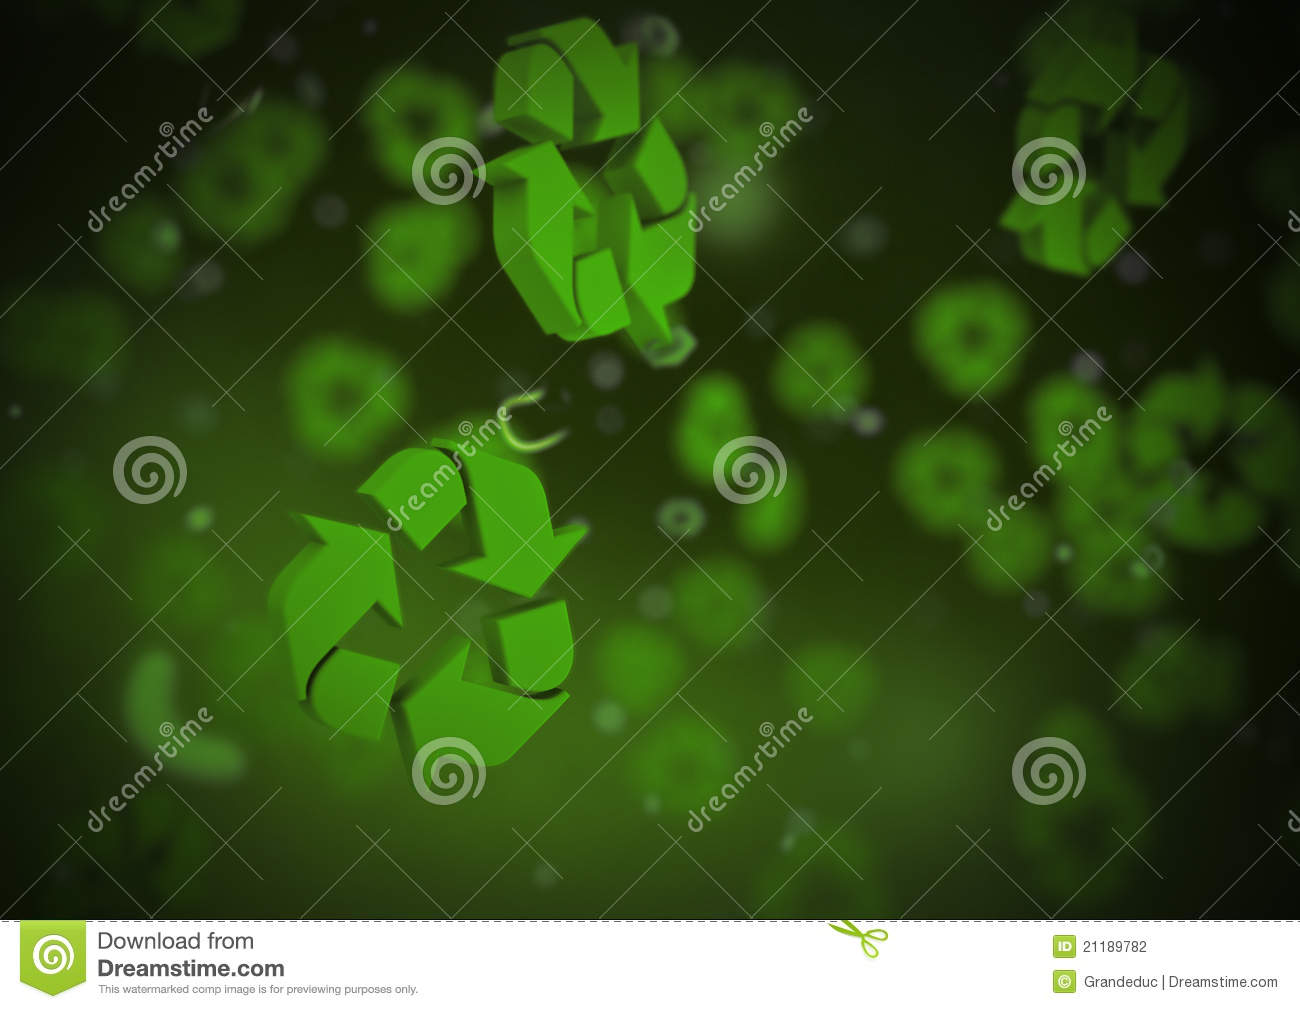 Microscopic recycling background